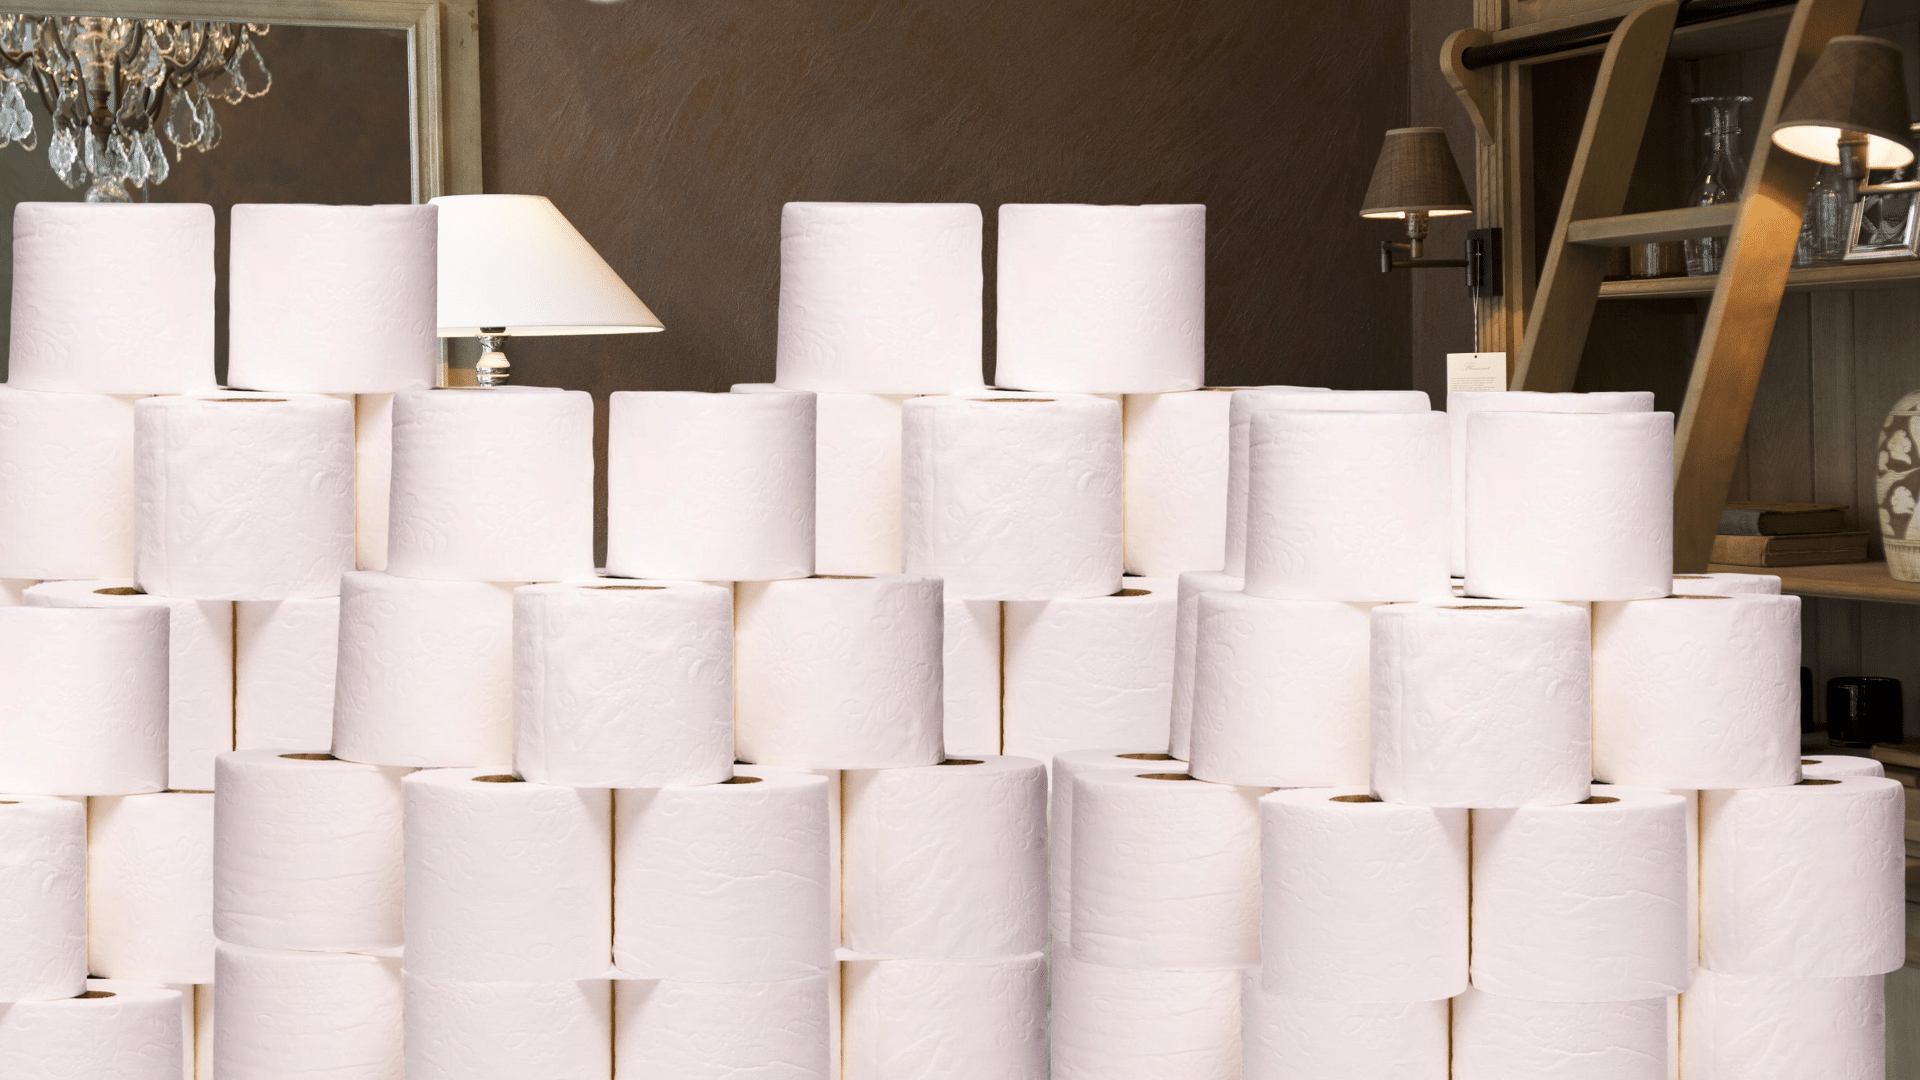 Toilet paper in the living room. Virtual background to use on Zoom, Microsoft Teams, Skype, Google Meet, WebEx or any other compatible app.